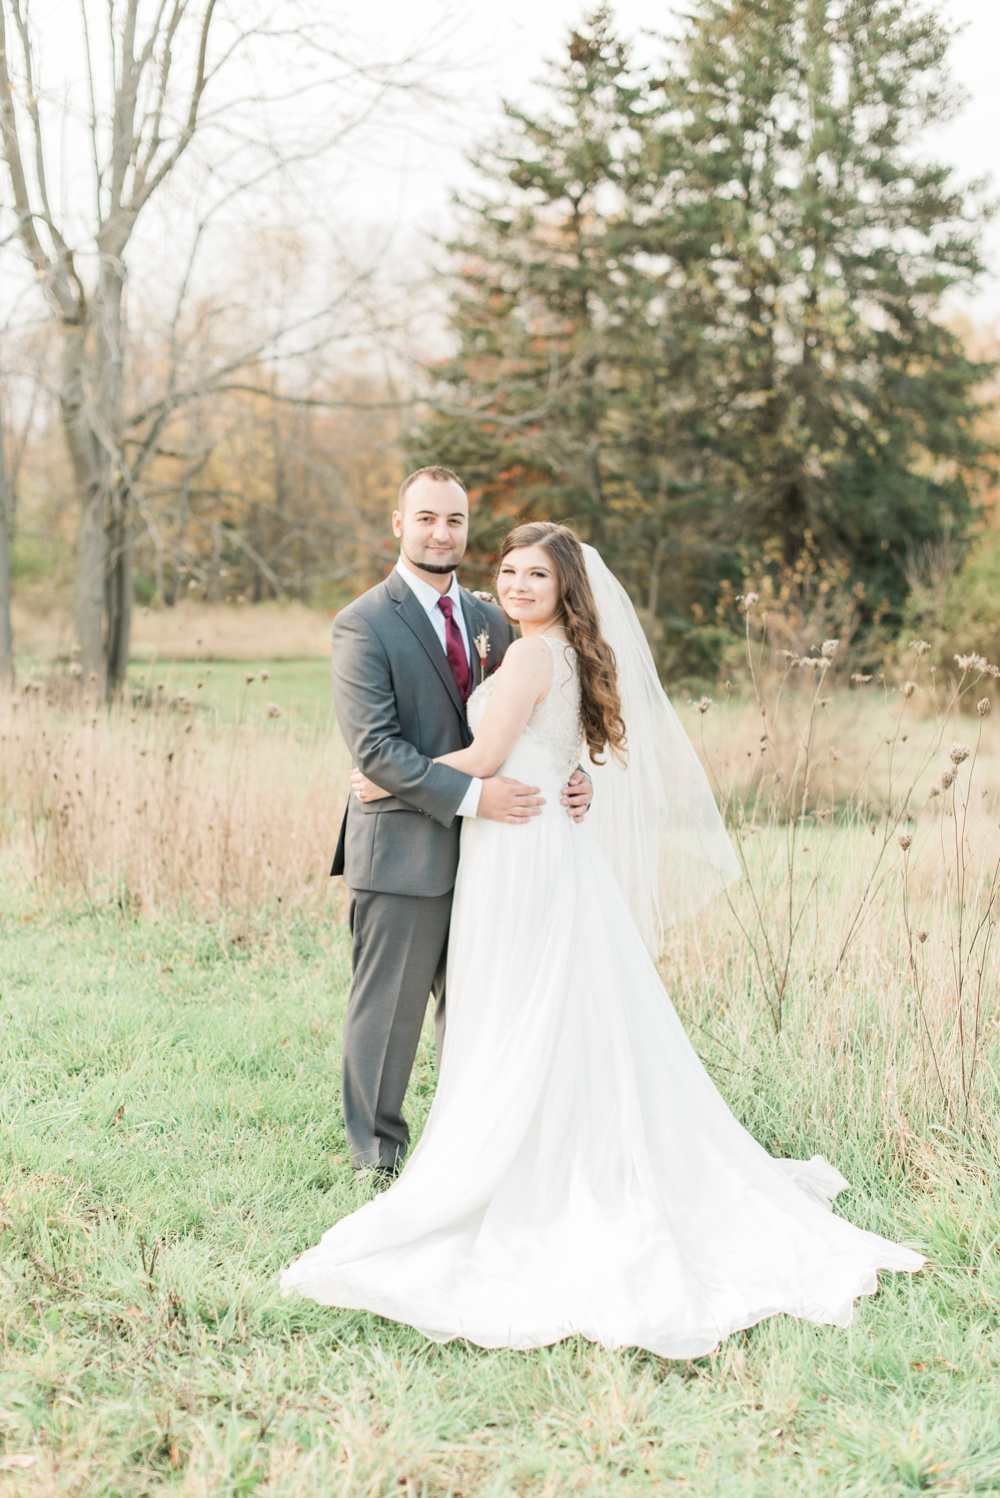 ricciardis-tree-farm-wedding-wadsworth-ohio-lauren-ryan_0110.jpg